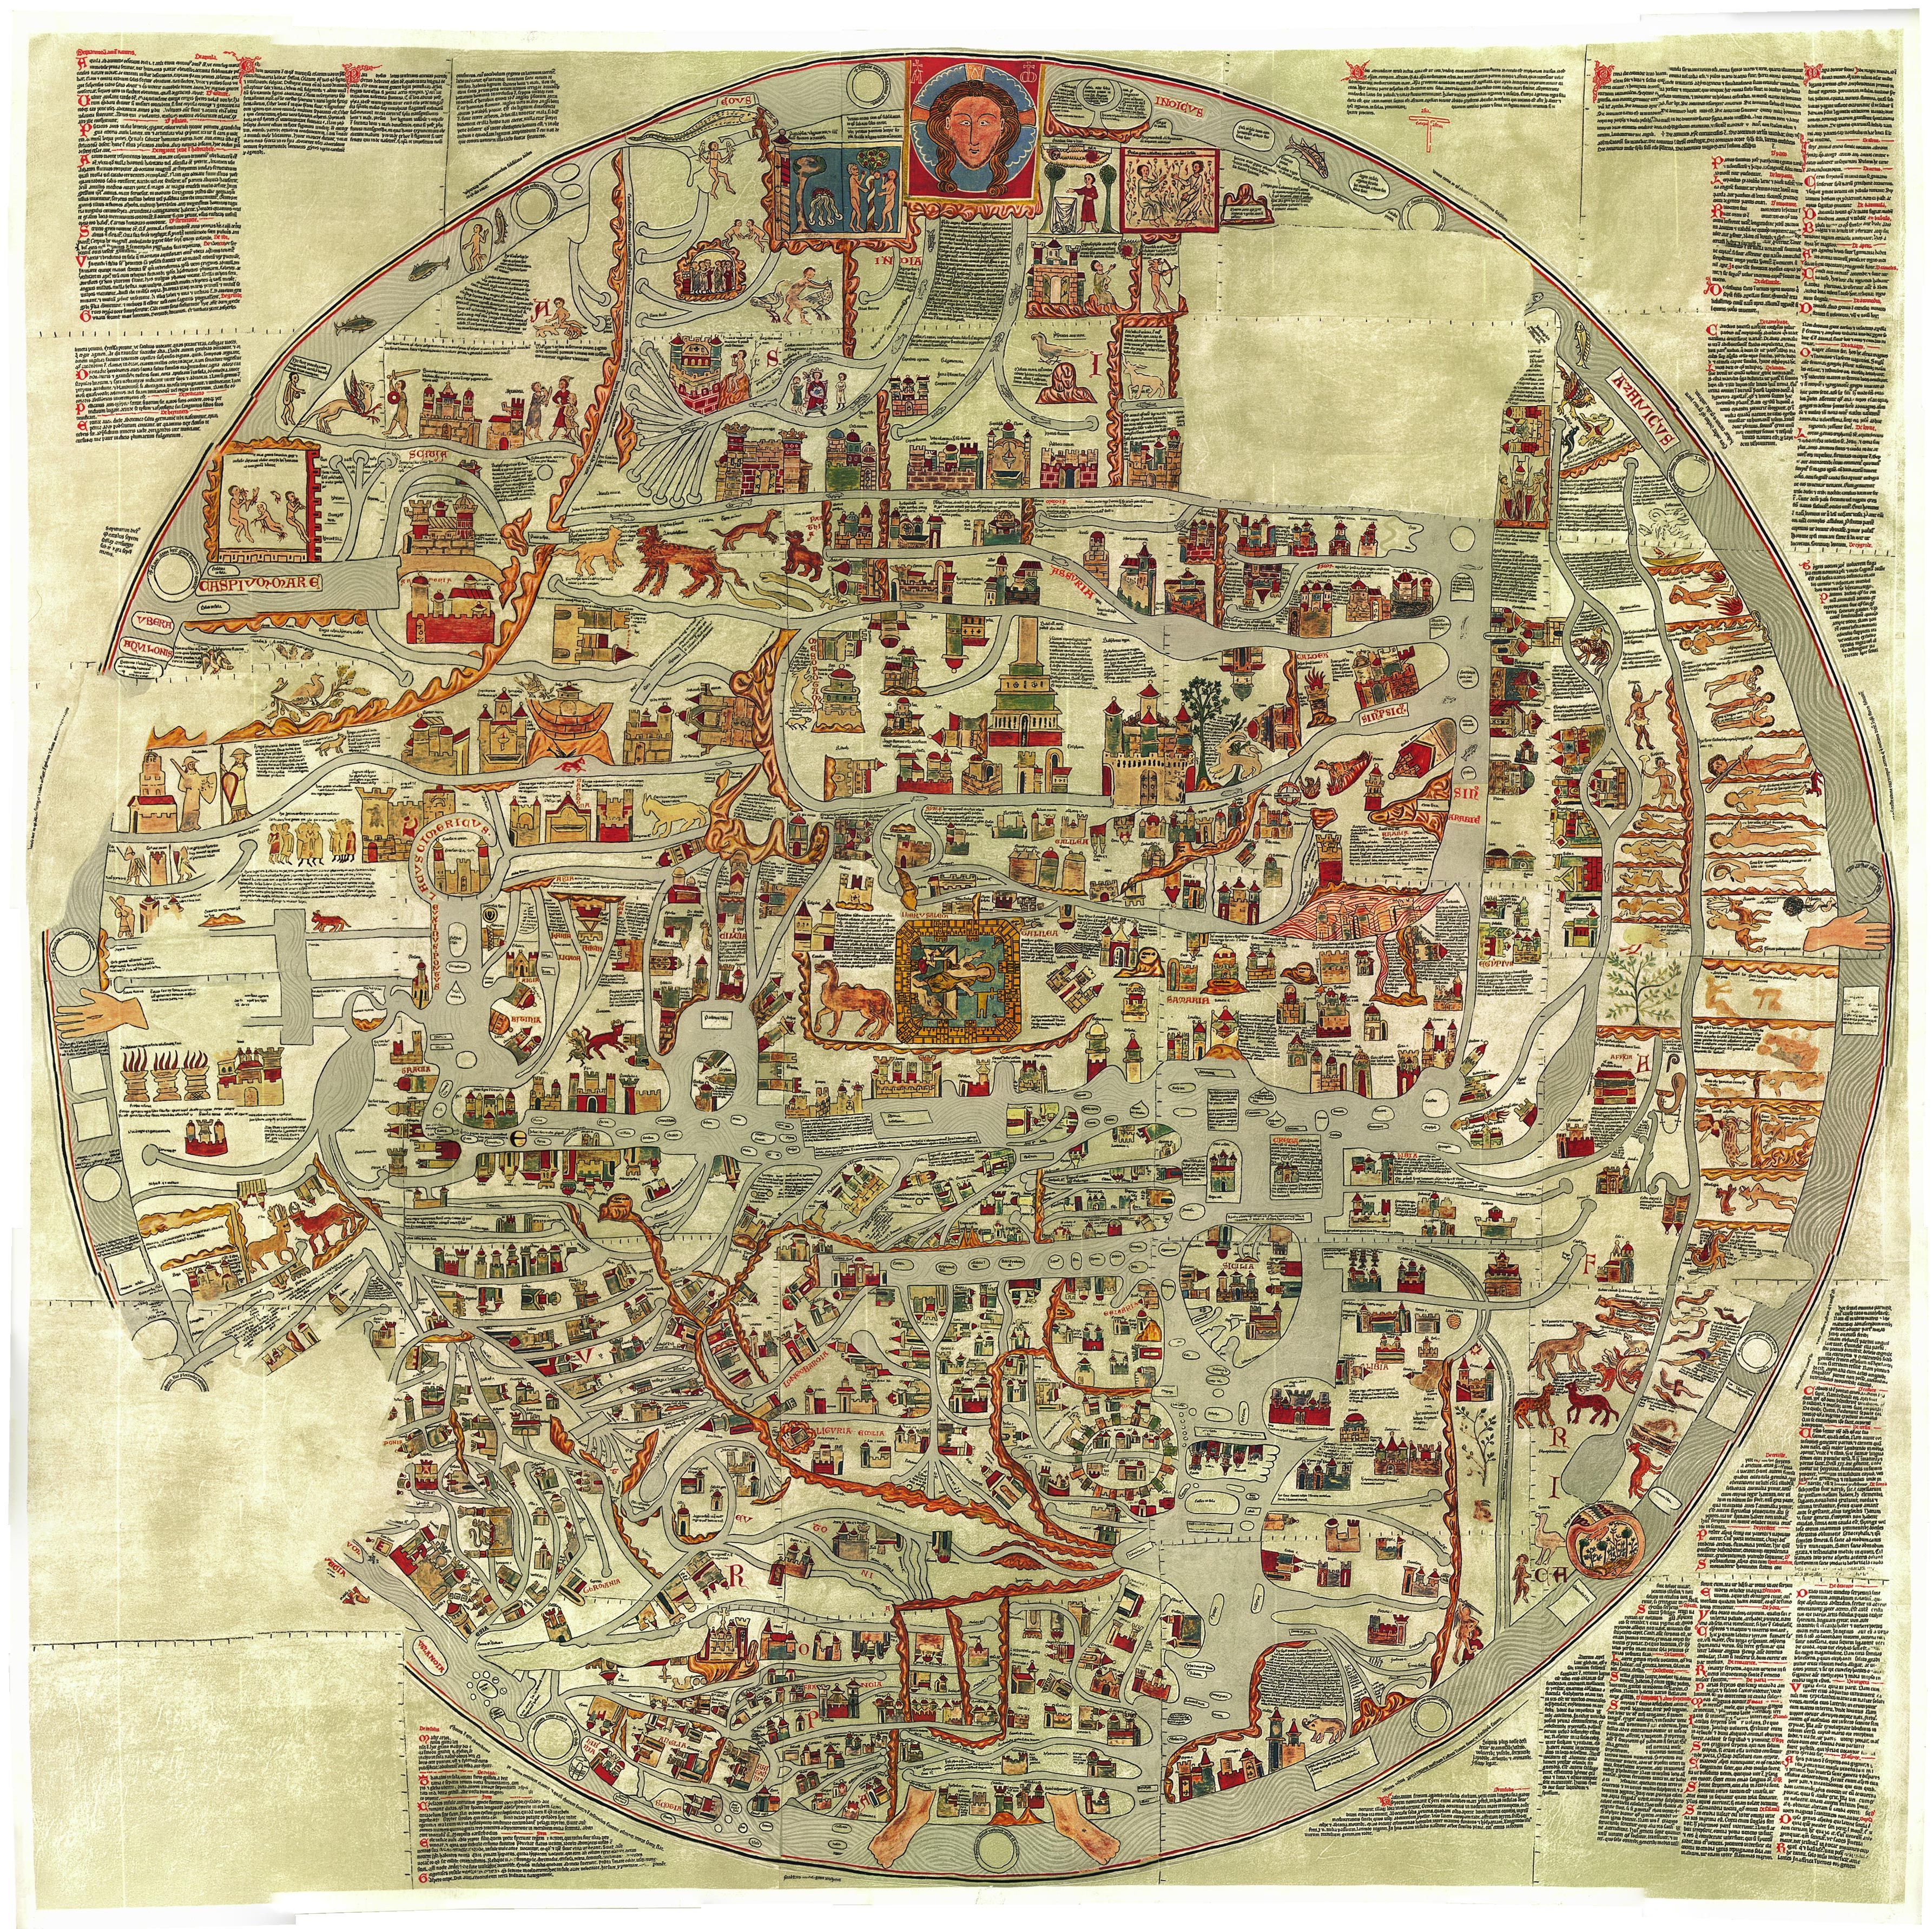 Ebstorfer world map t o design around the year 1300 to define ebstorfer world map t o design around the year 1300 gumiabroncs Choice Image